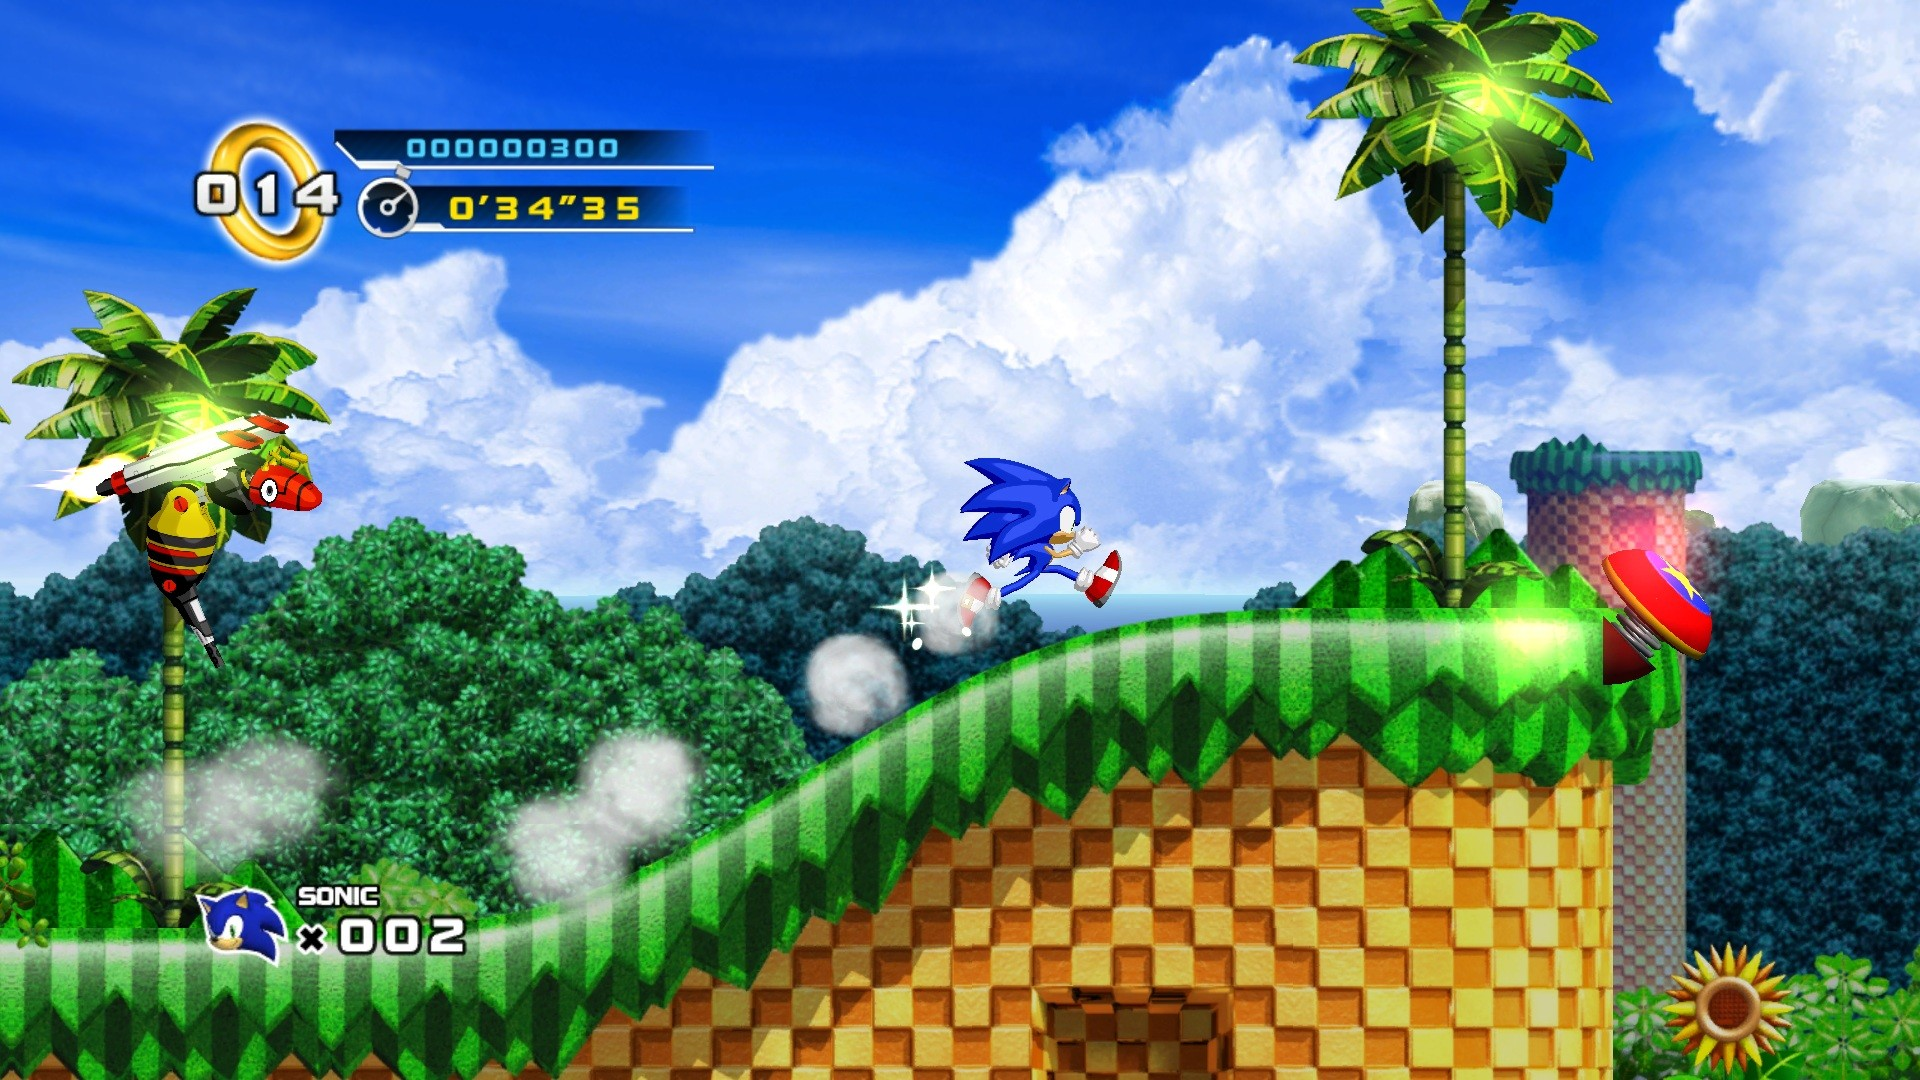 247 Sonic the Hedgehog HD Wallpapers   Backgrounds – Wallpaper Abyss – Page  8